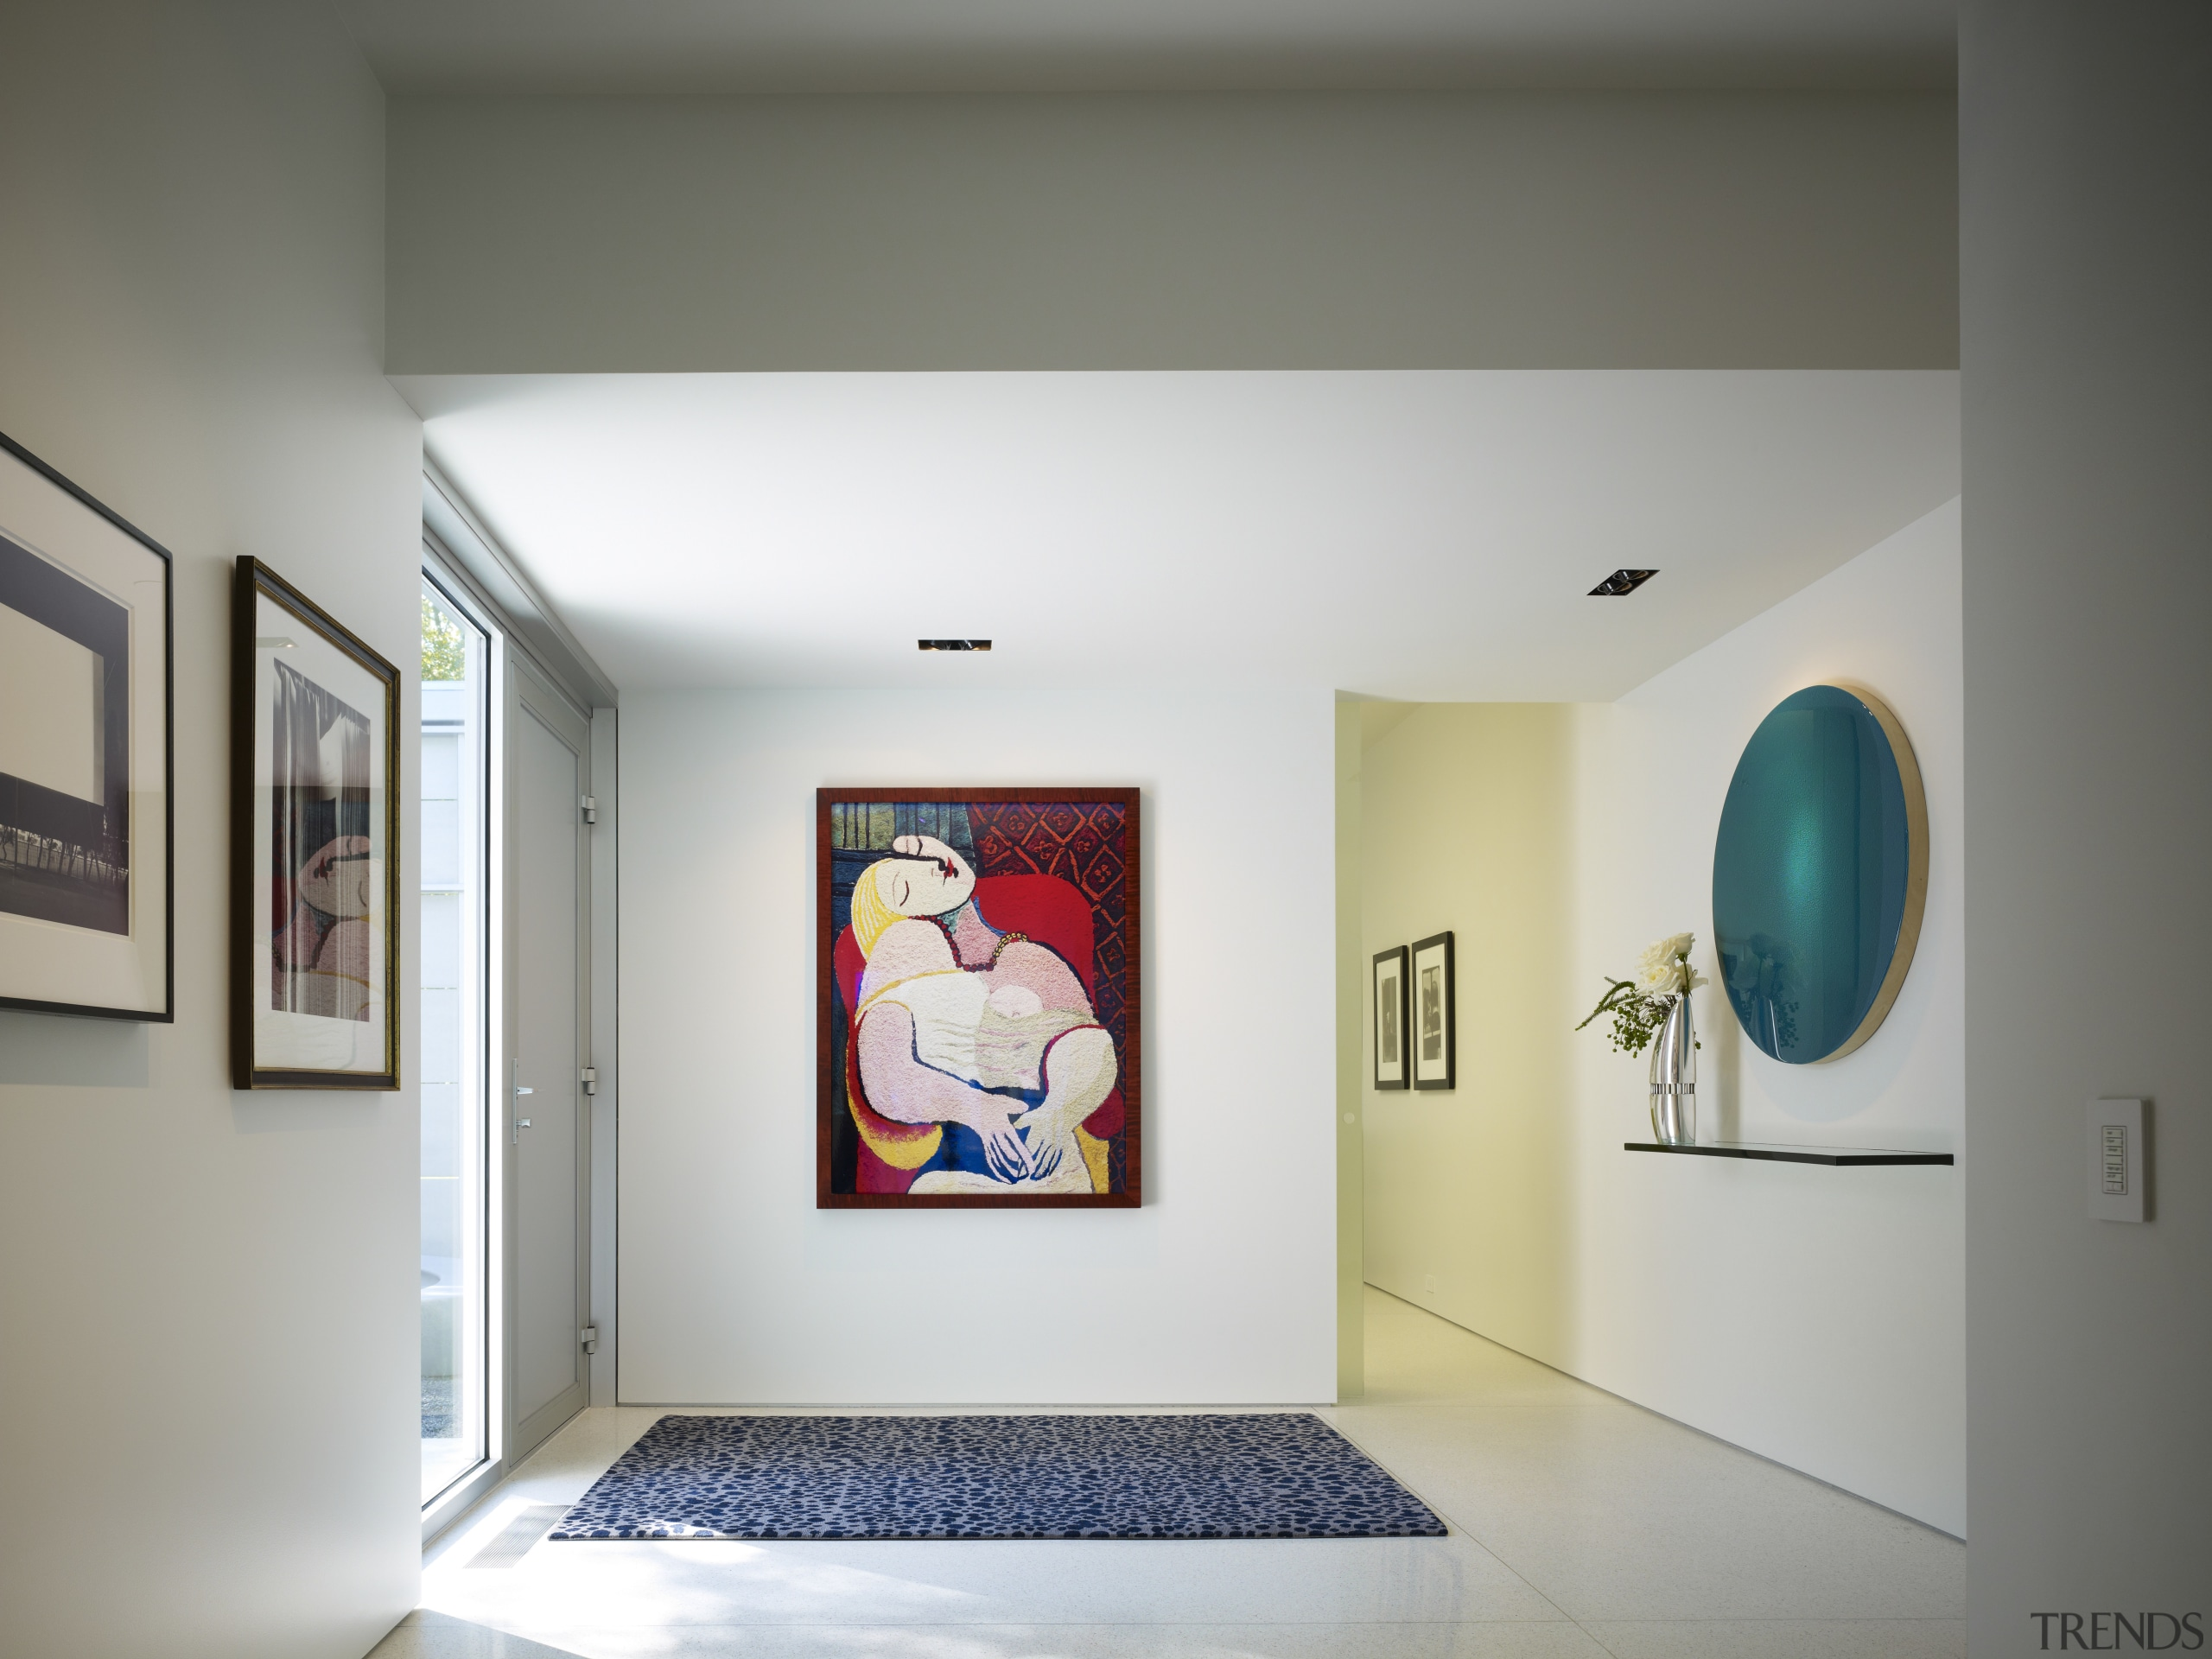 The entry foyer in this home resembles a art, art exhibition, art gallery, ceiling, exhibition, interior design, modern art, museum, room, tourist attraction, gray